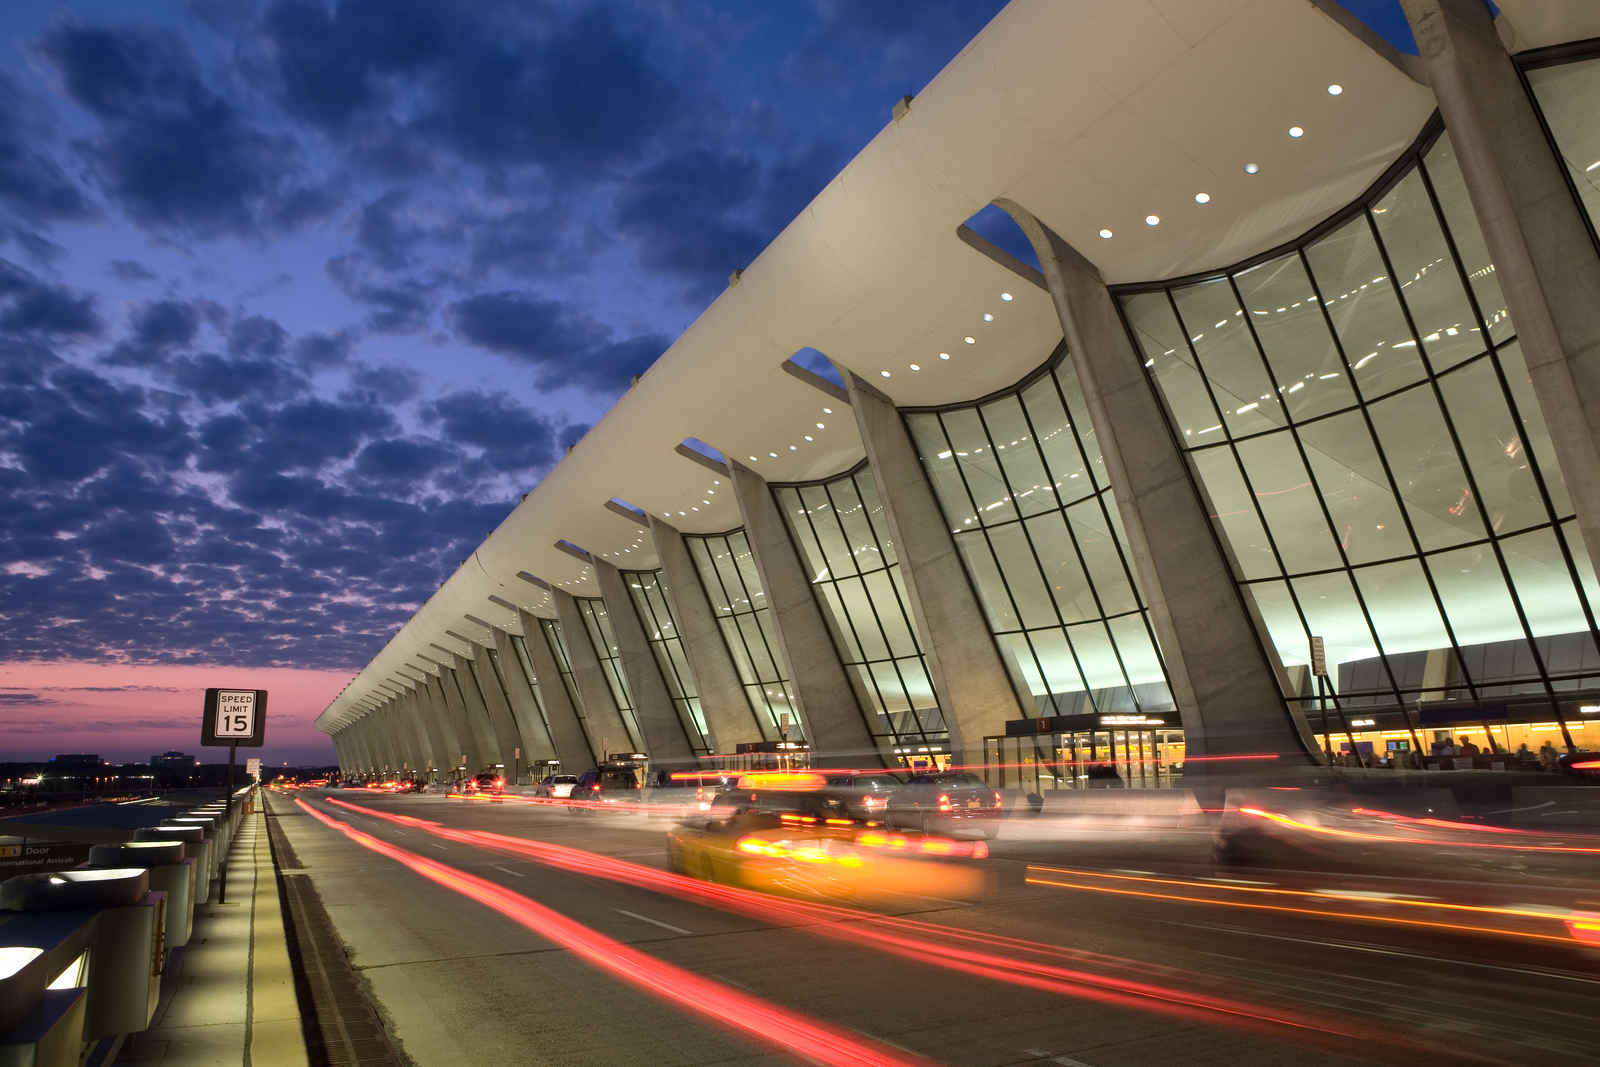 With Dulles International Airport located just 15 minutes away, you'll love the convenience of traveling near and far.